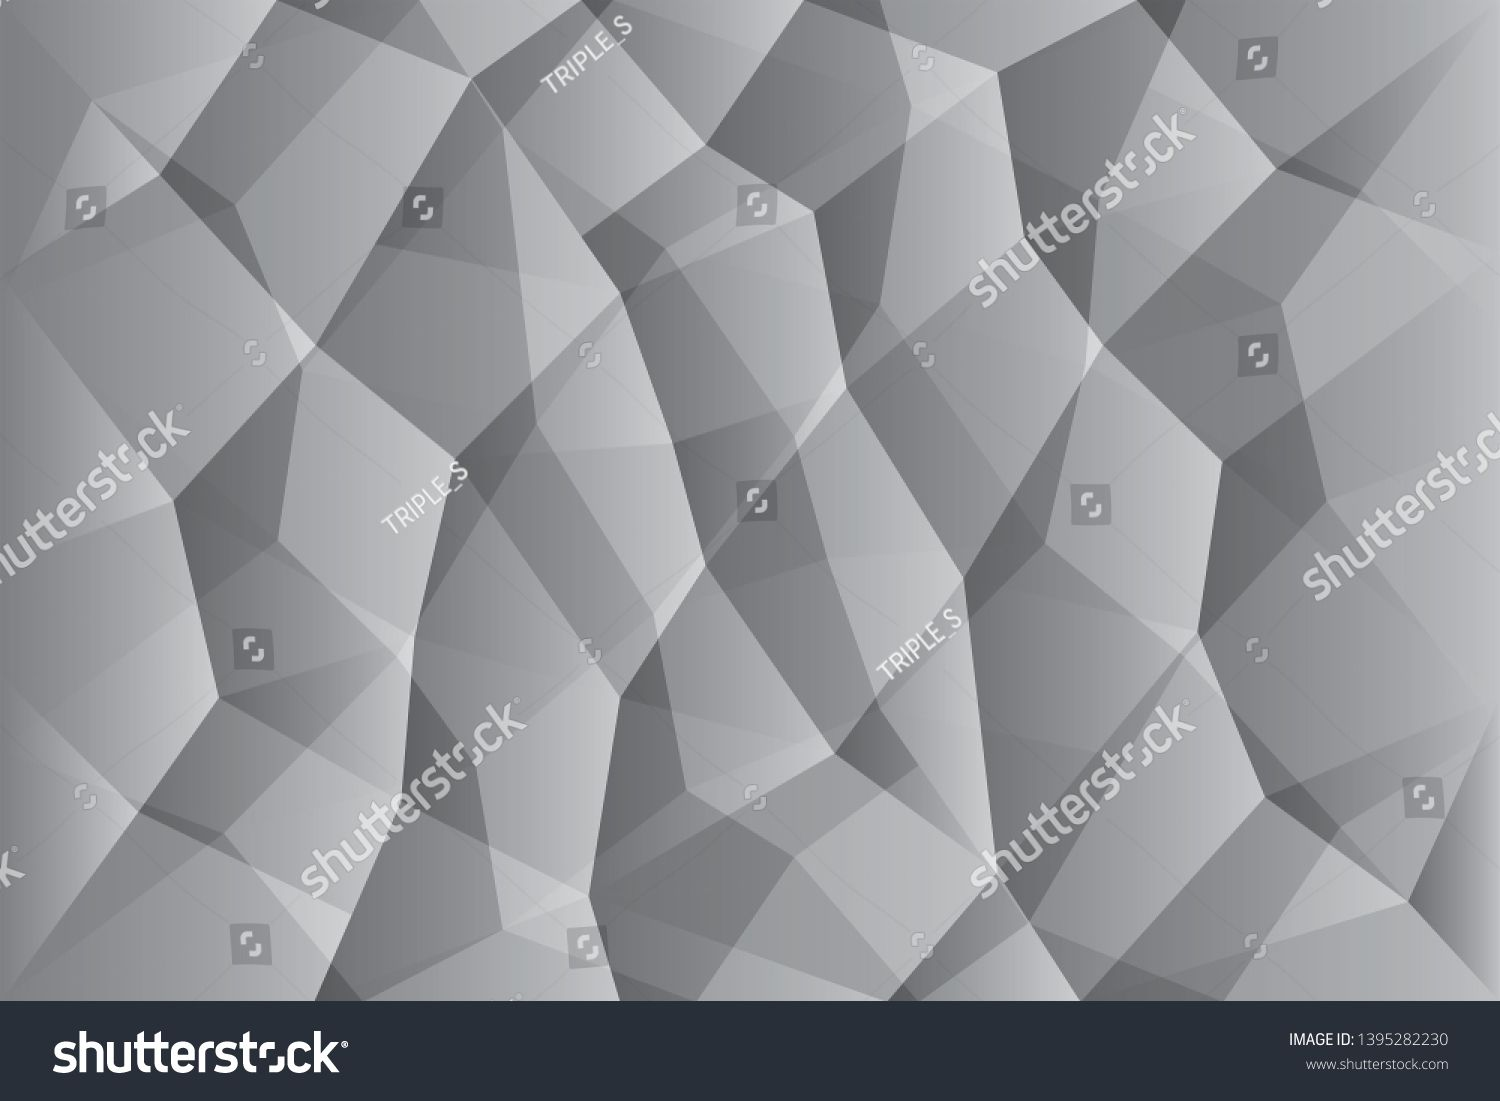 Abstract Geometric Grey Color Background Ad Ad Geometric